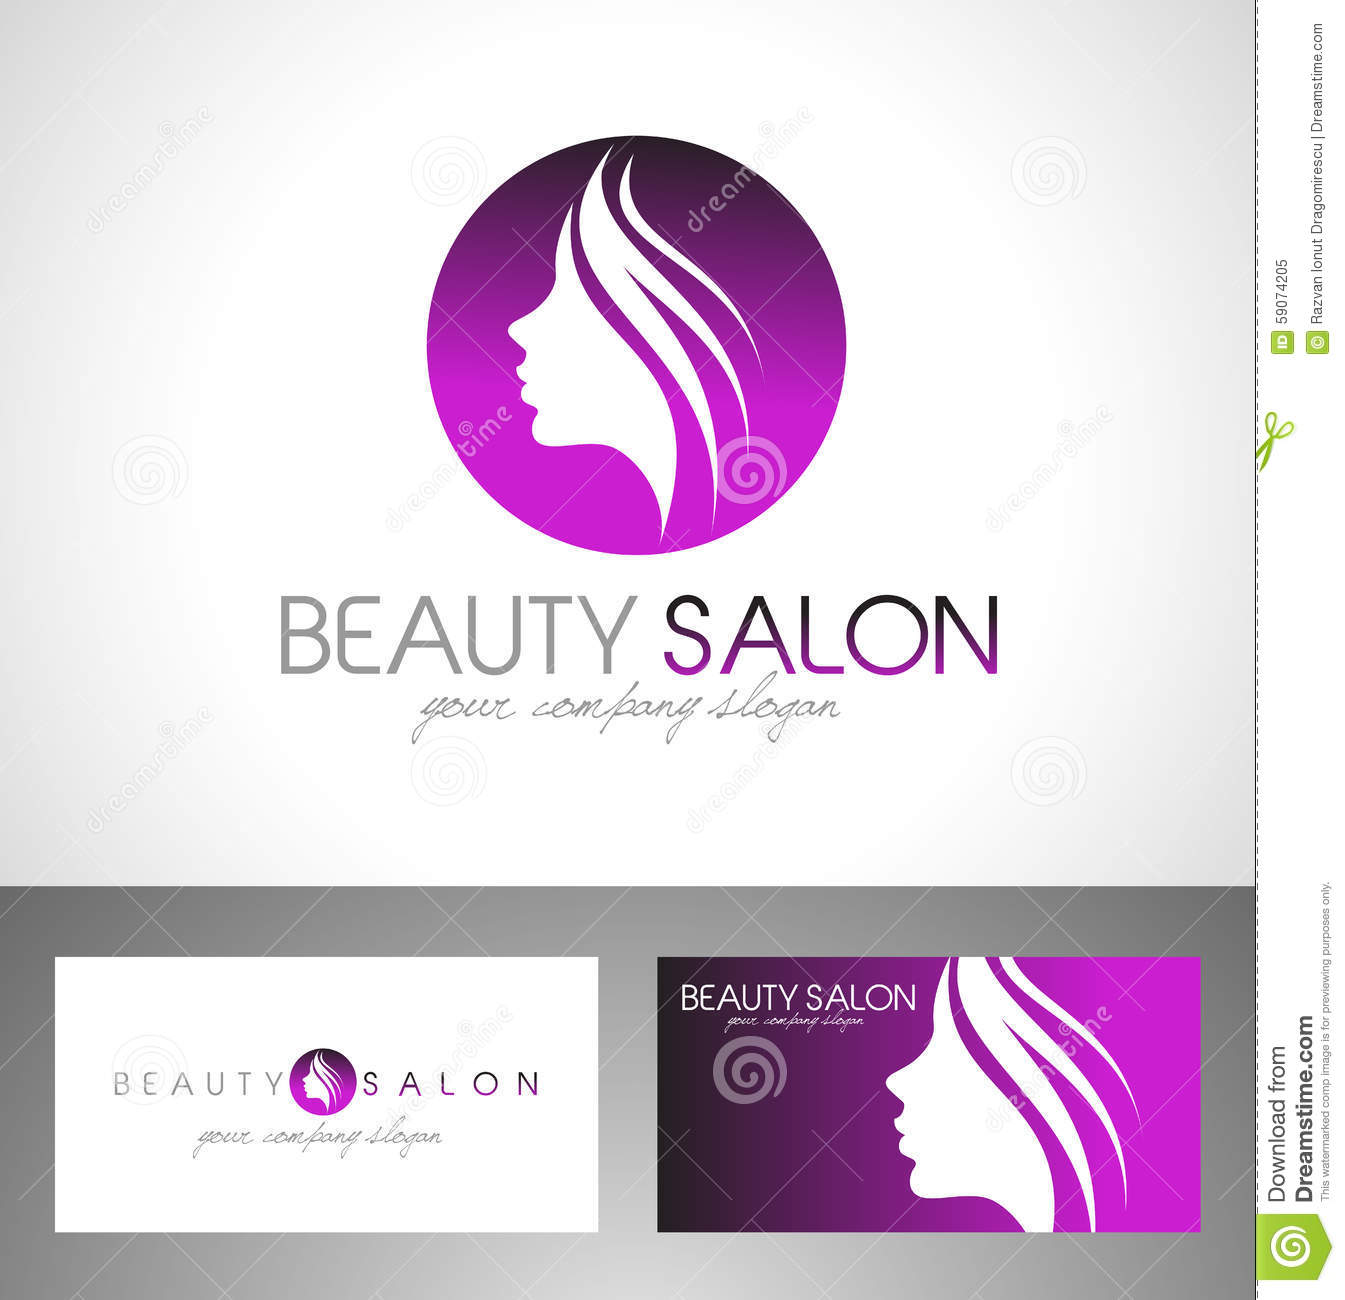 Logos with cc joy studio design gallery best design - Beauty Cosmetic Creative Design Face Hair Logo